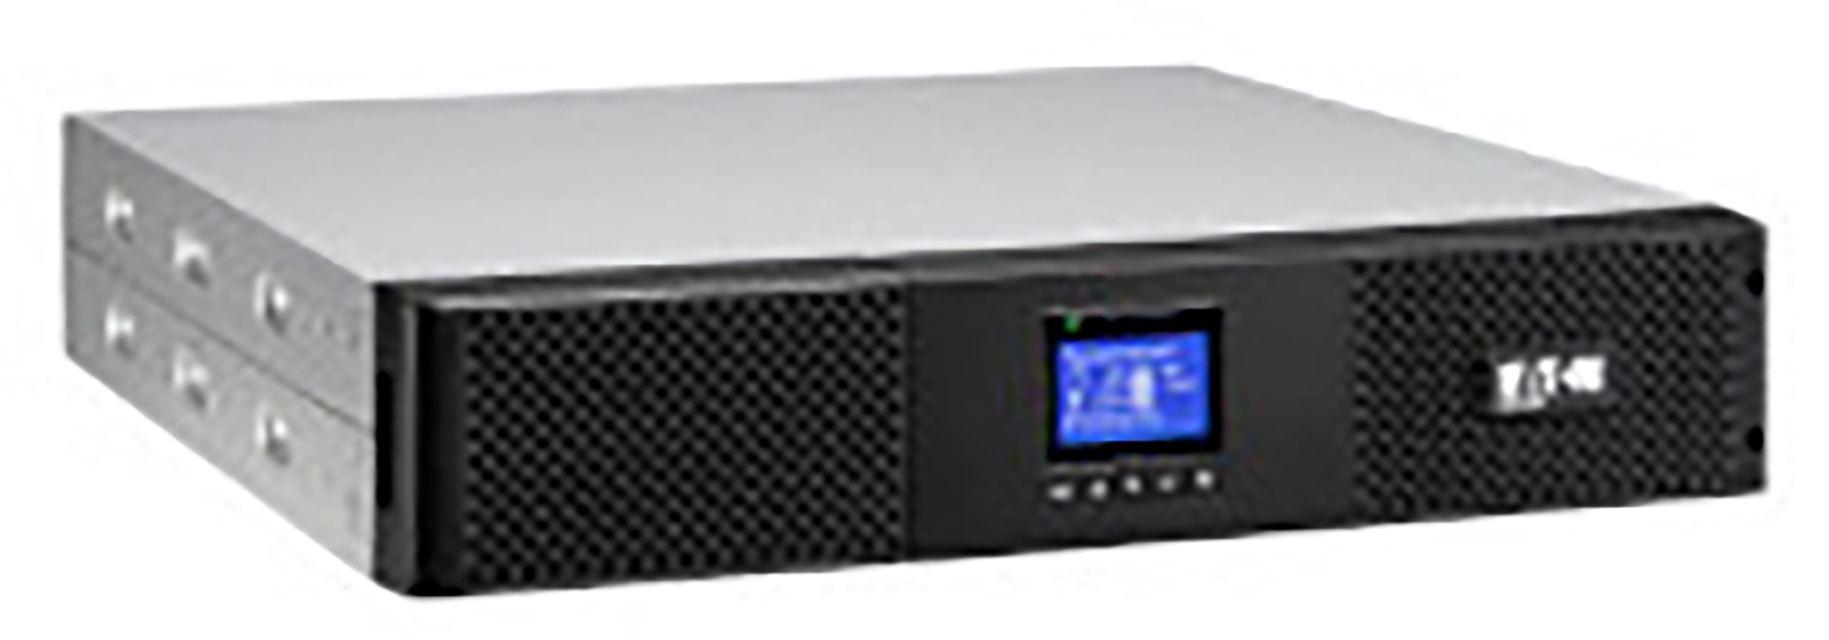 EATON UPS 9SX 1000VA, On-line, Rack 2U, 1000VA/900W, výstup 6x IEC C13, USB, displej, sinus